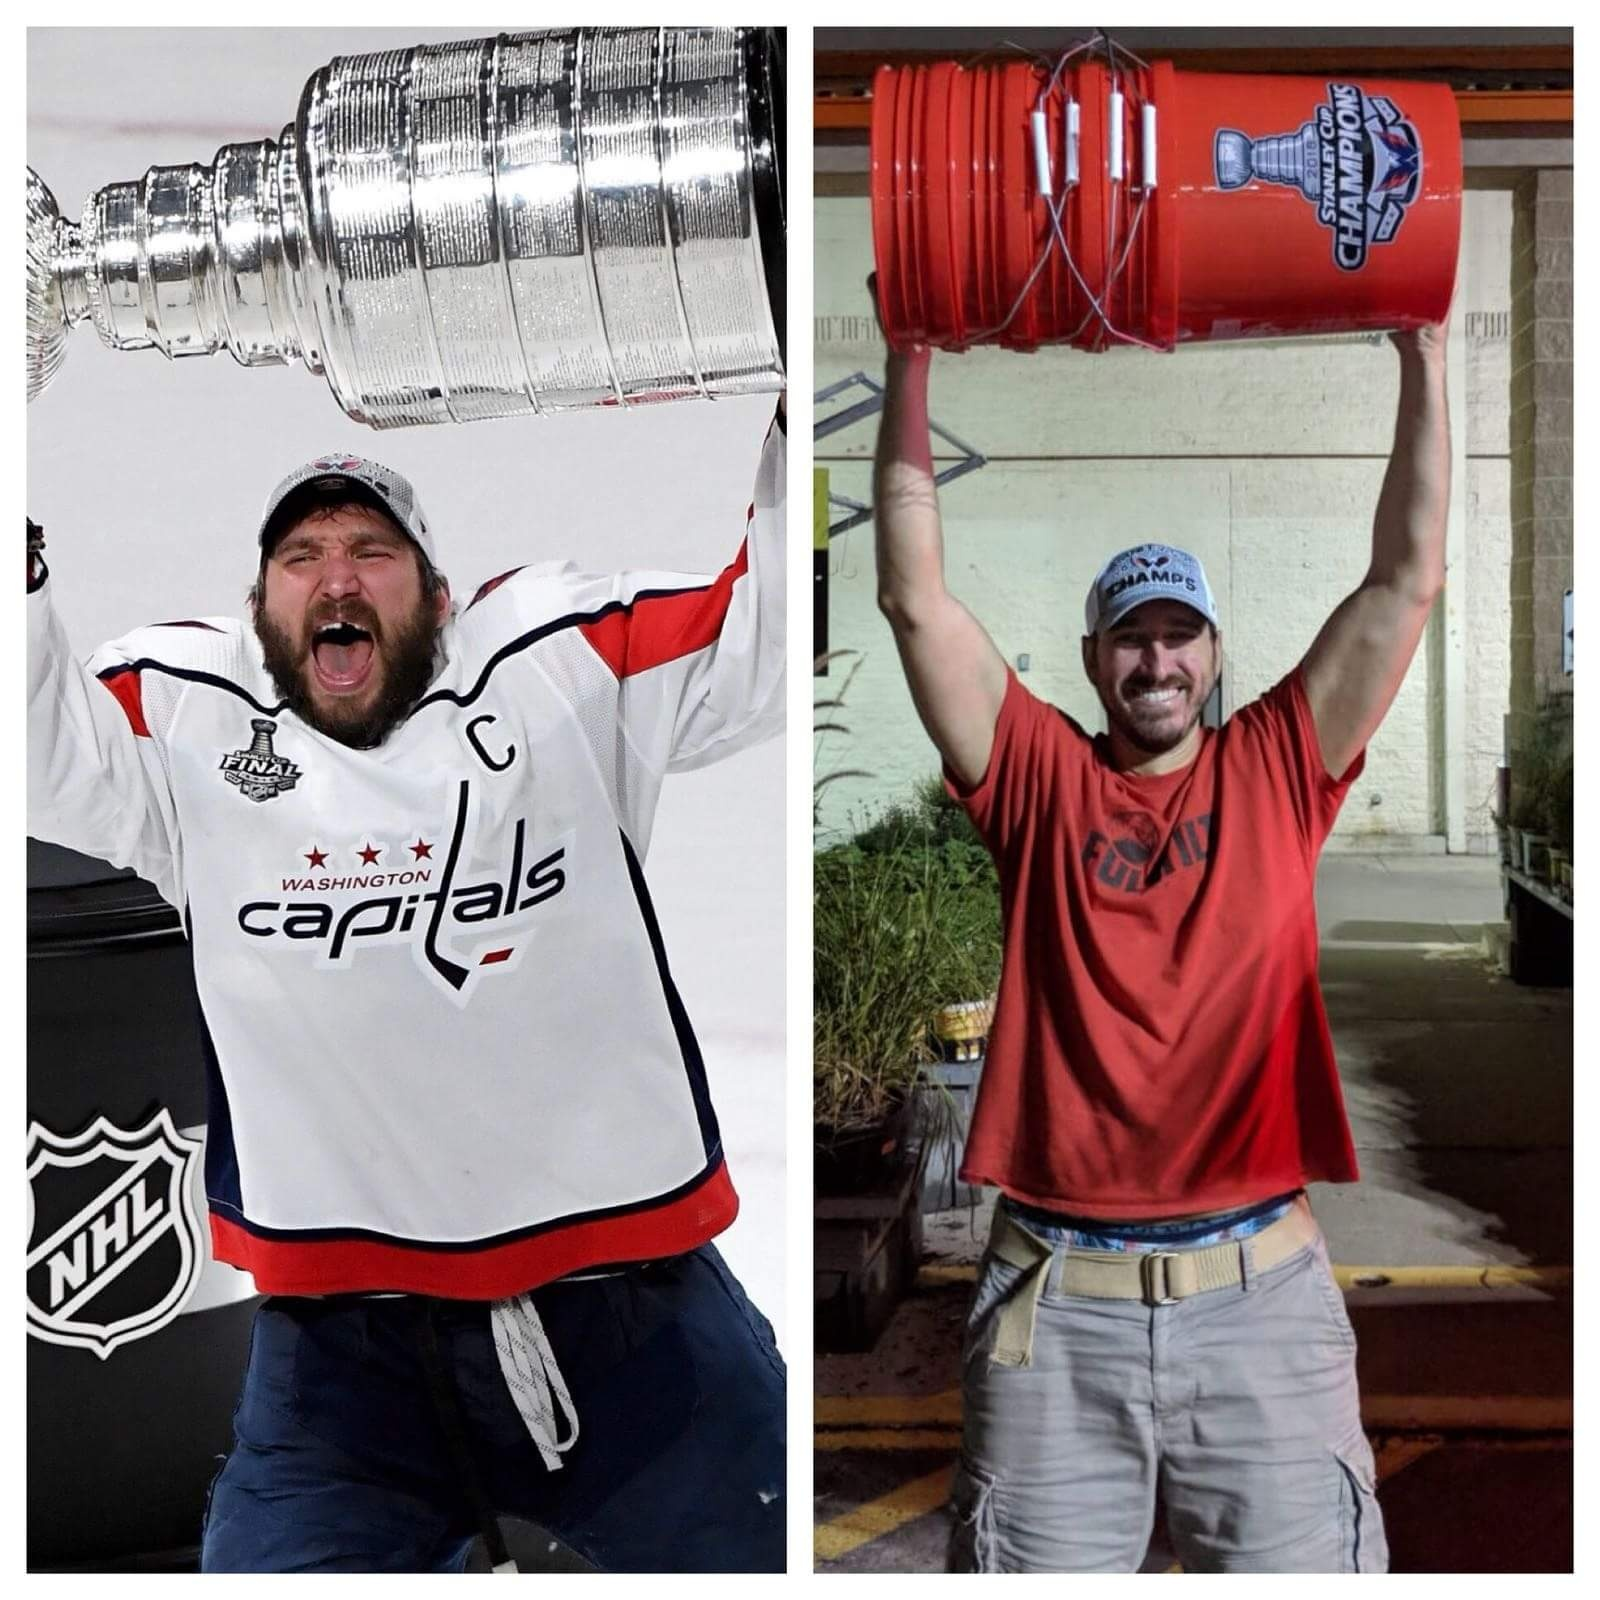 6769f50b Capitals fans, who will never get a chance to raise the NHL championship  trophy themselves, saw the bucket as a funny alternative to the Stanley Cup.